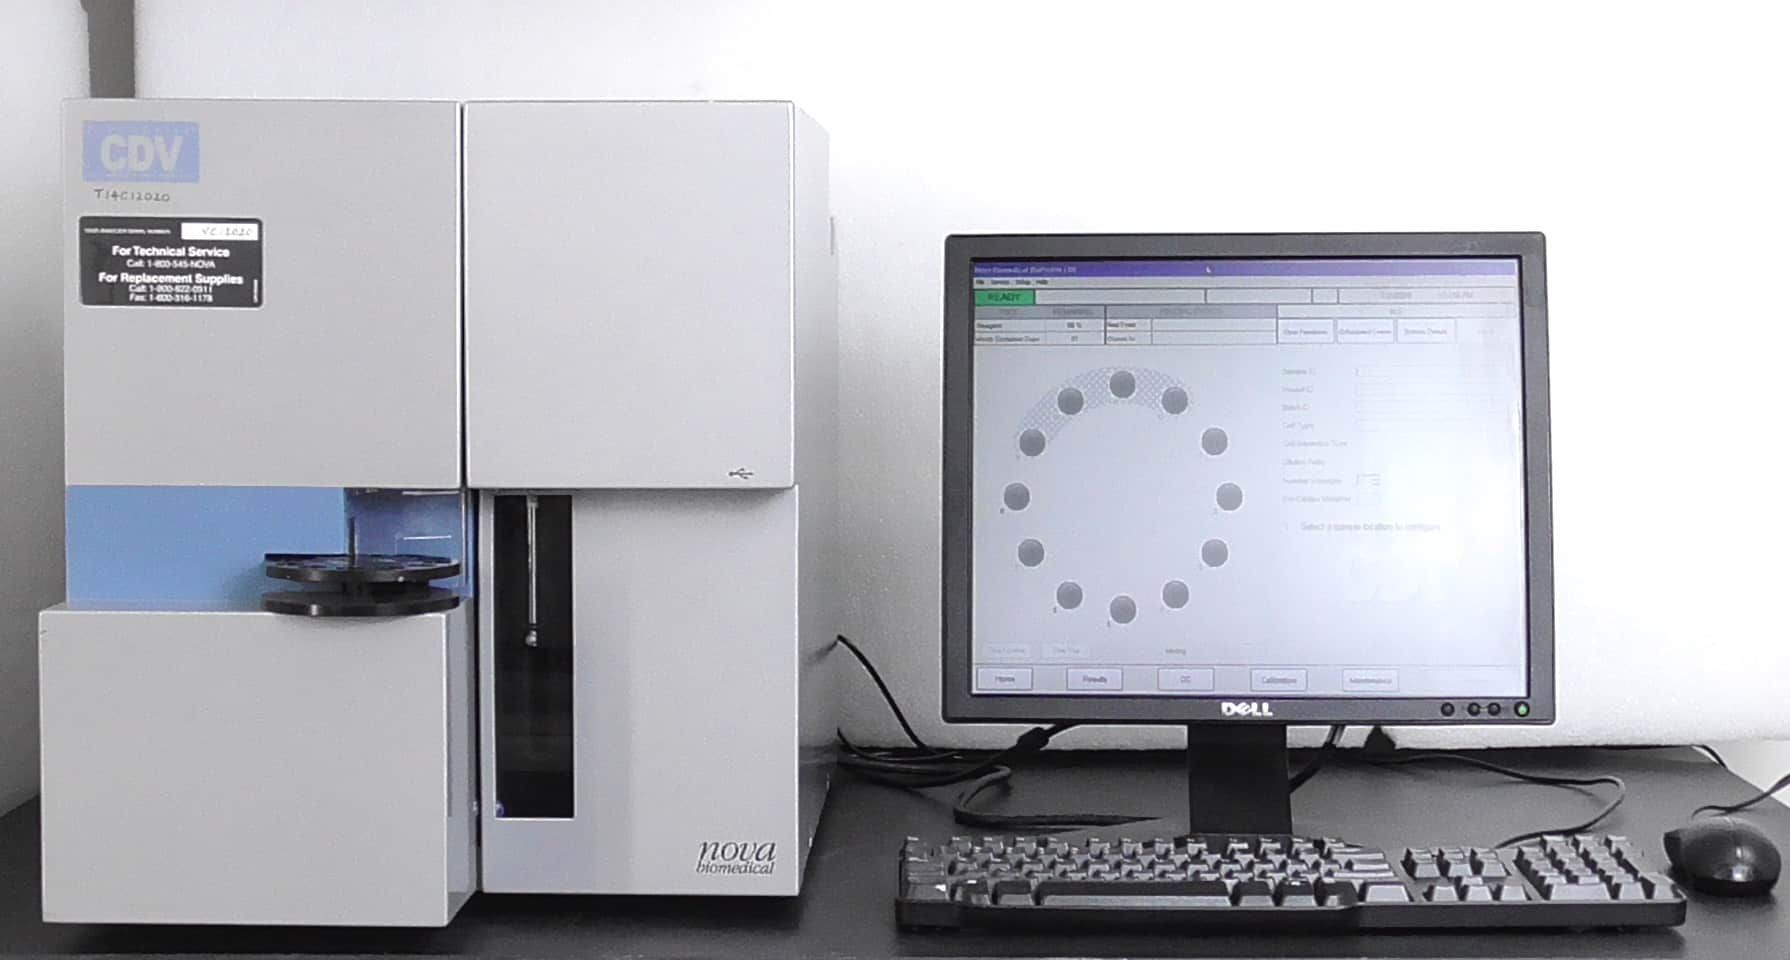 Nova Biomedical Bioprofile CDV Cell Density and Viability Analyzer